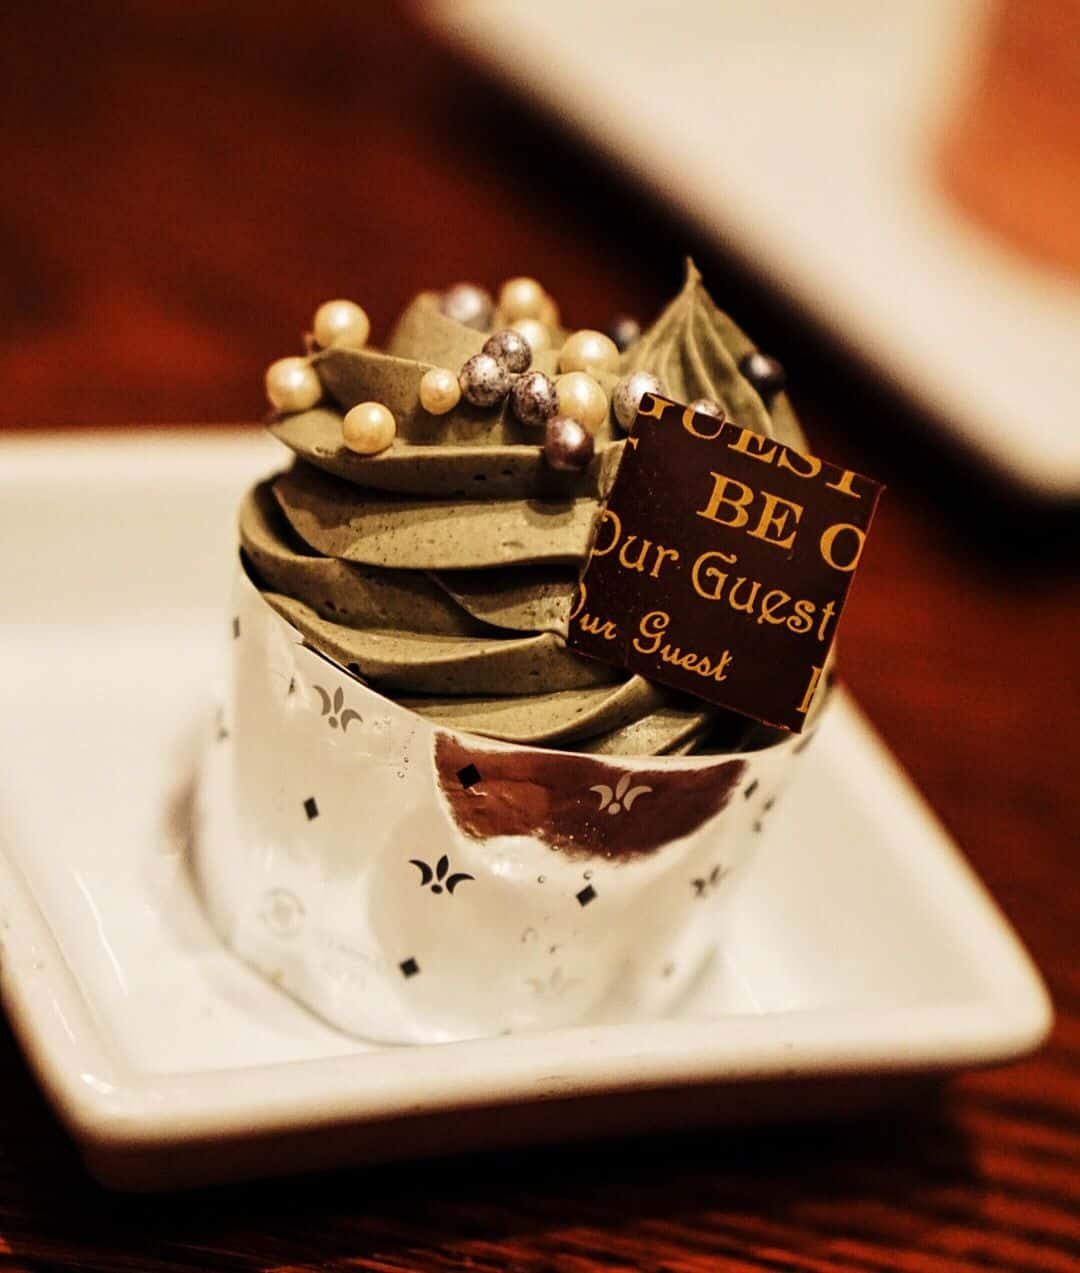 Master's Cupcake Be Our Guest